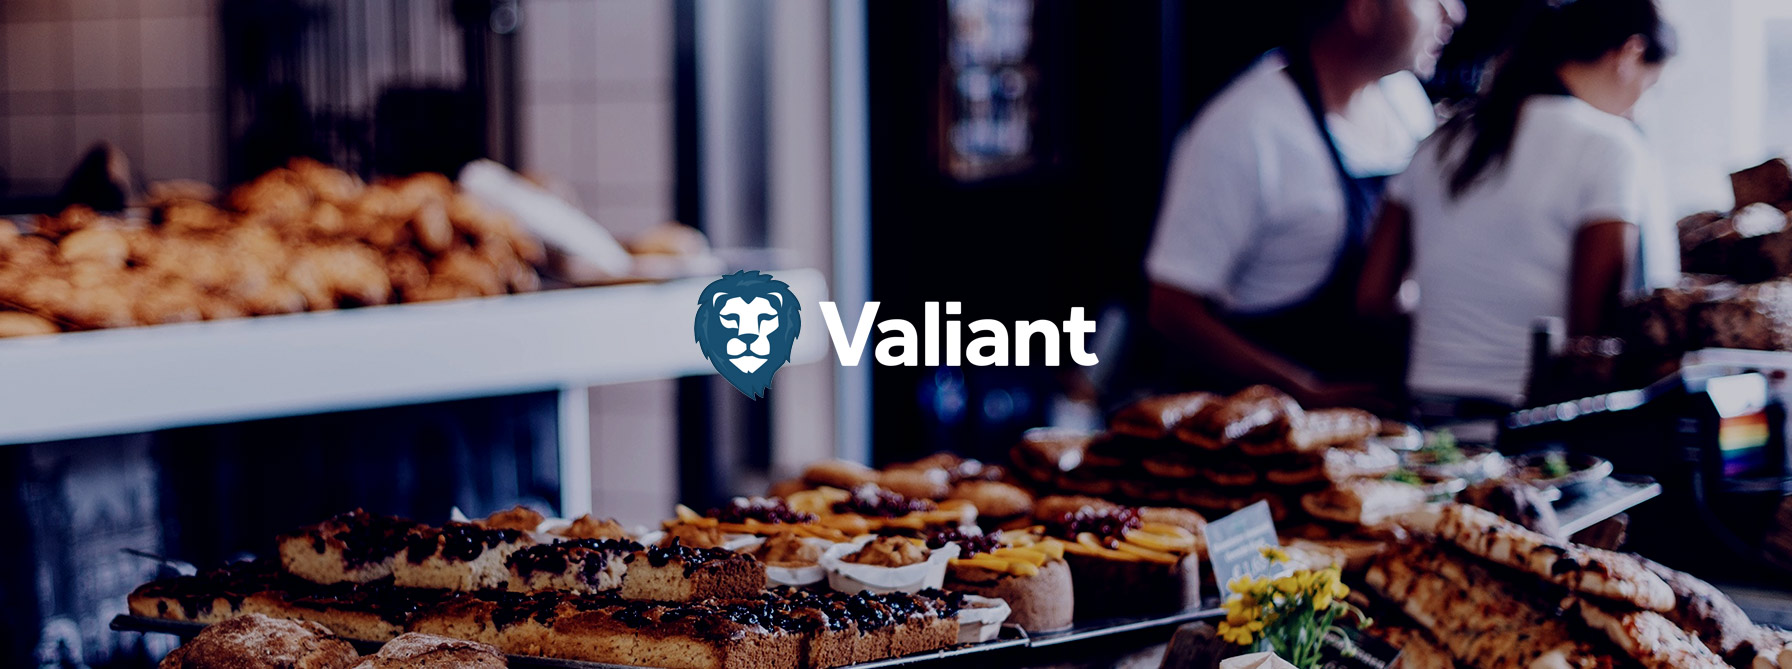 Valiant: helping small businesses find finance and grow